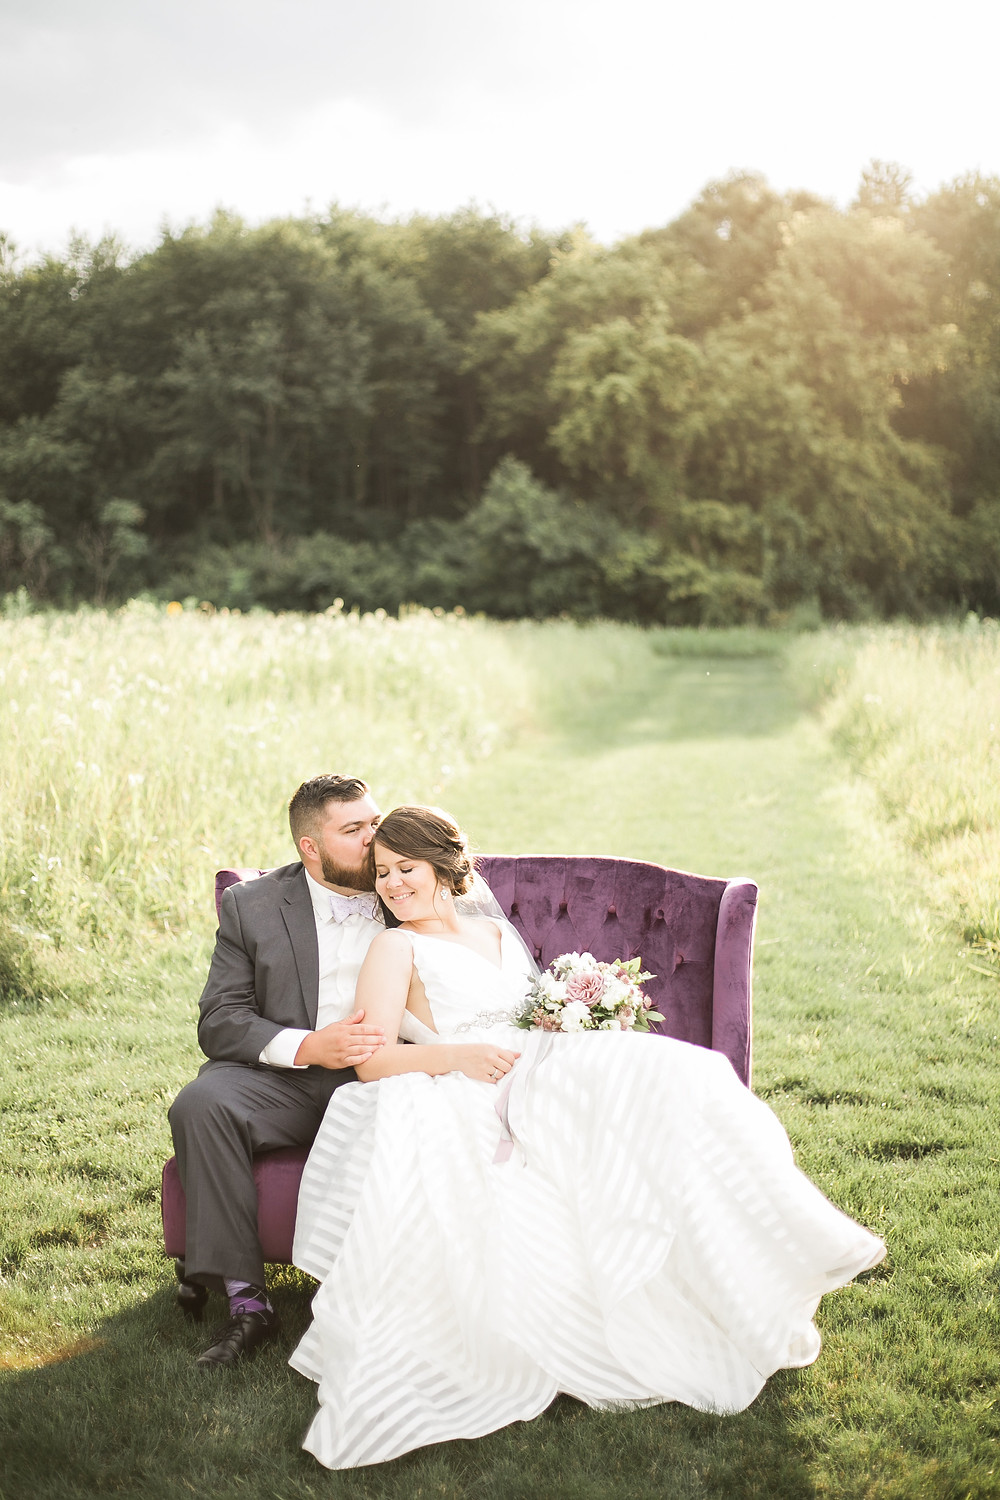 bride and groom cuddling on a purple velvet couch in a field of grass at sunset